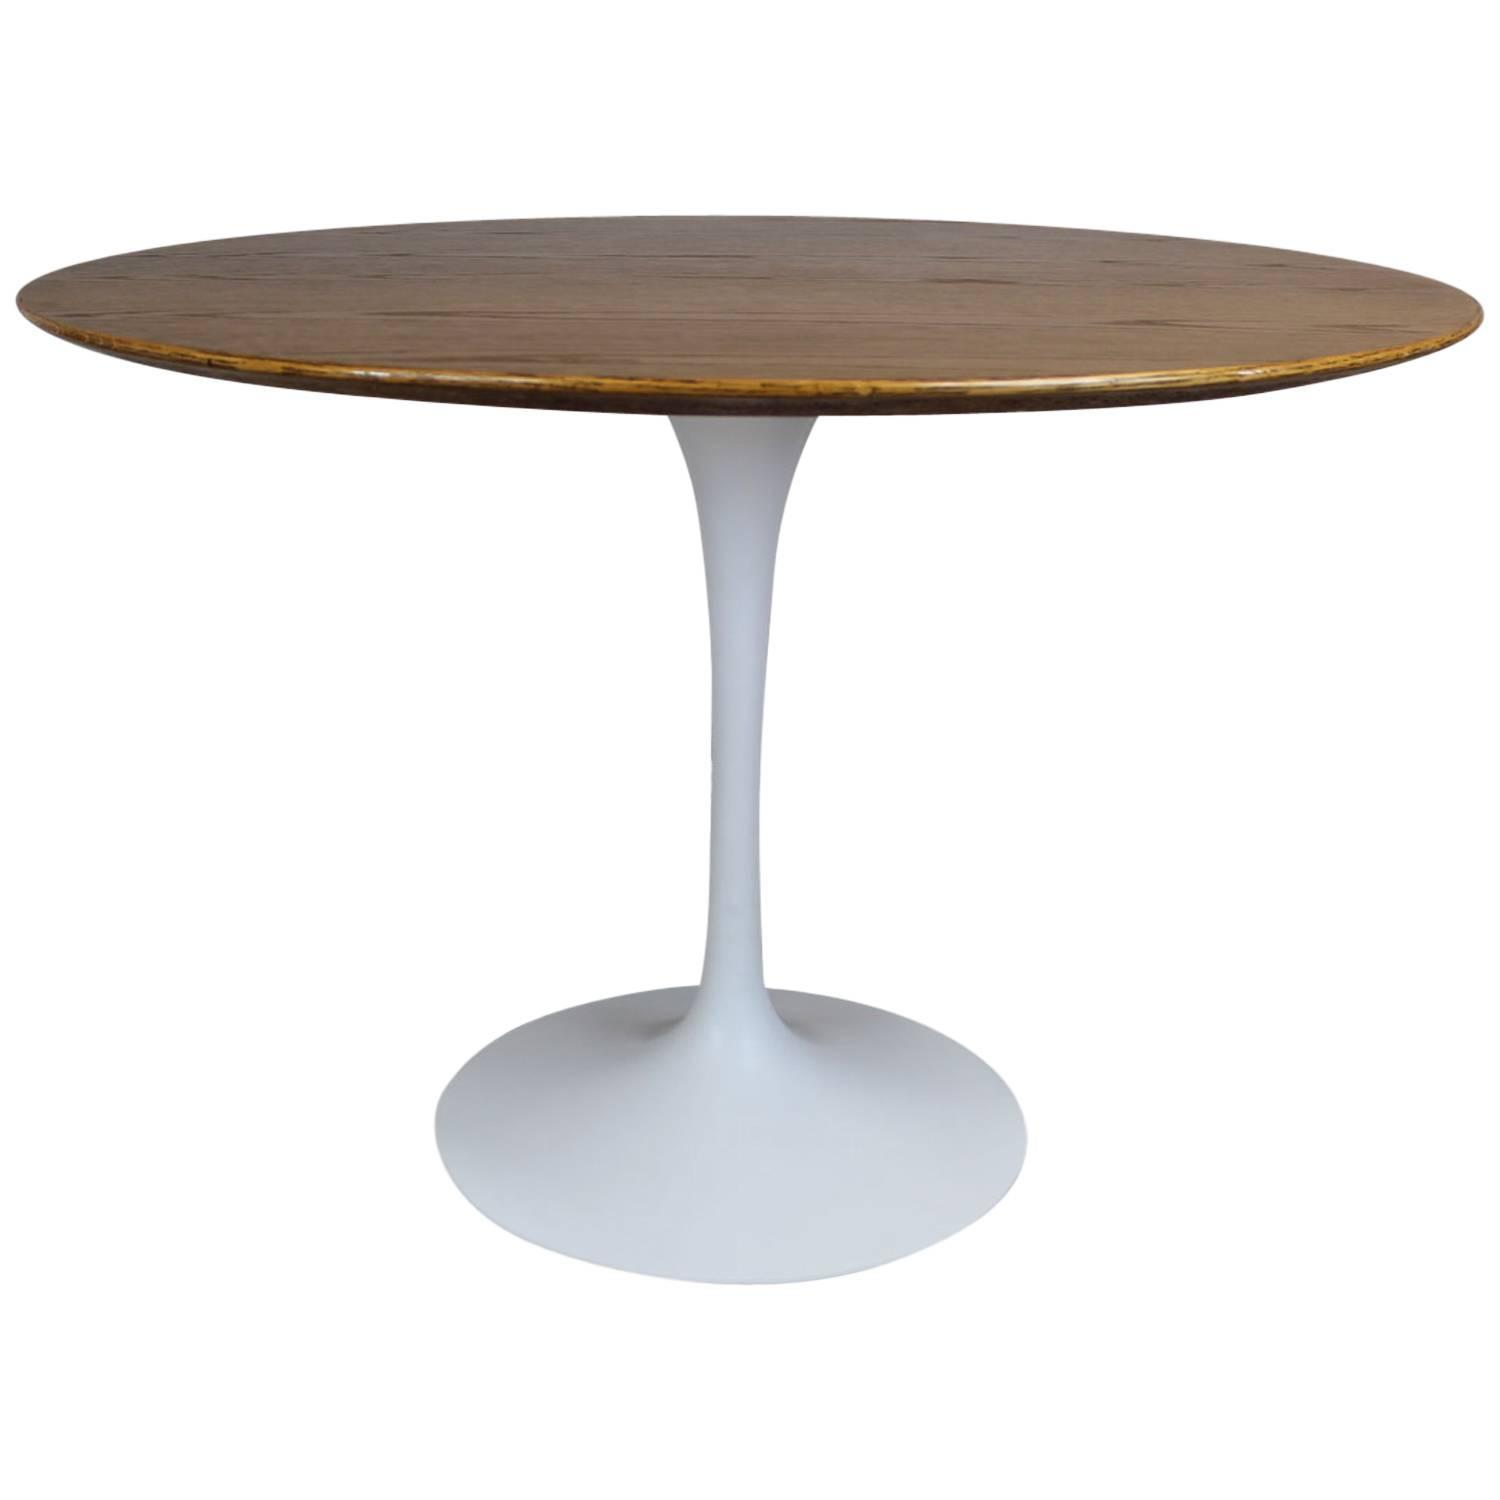 Eero saarinen tulip base dining table at 1stdibs for Dining table base